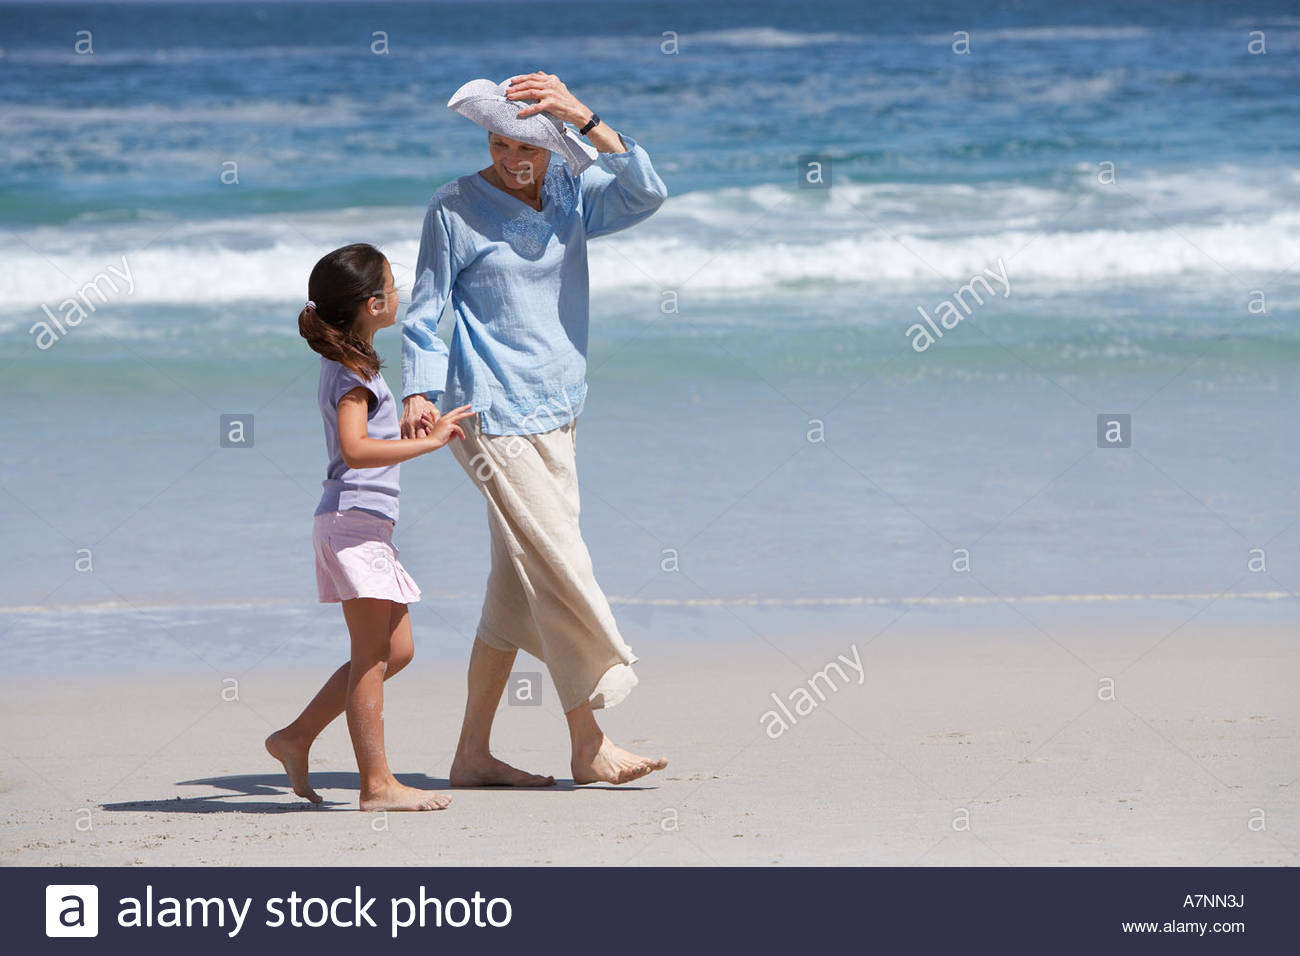 Mother and daughter 6 8 walking on beach holding hands woman holding sun hat in breeze smiling - Stock Image